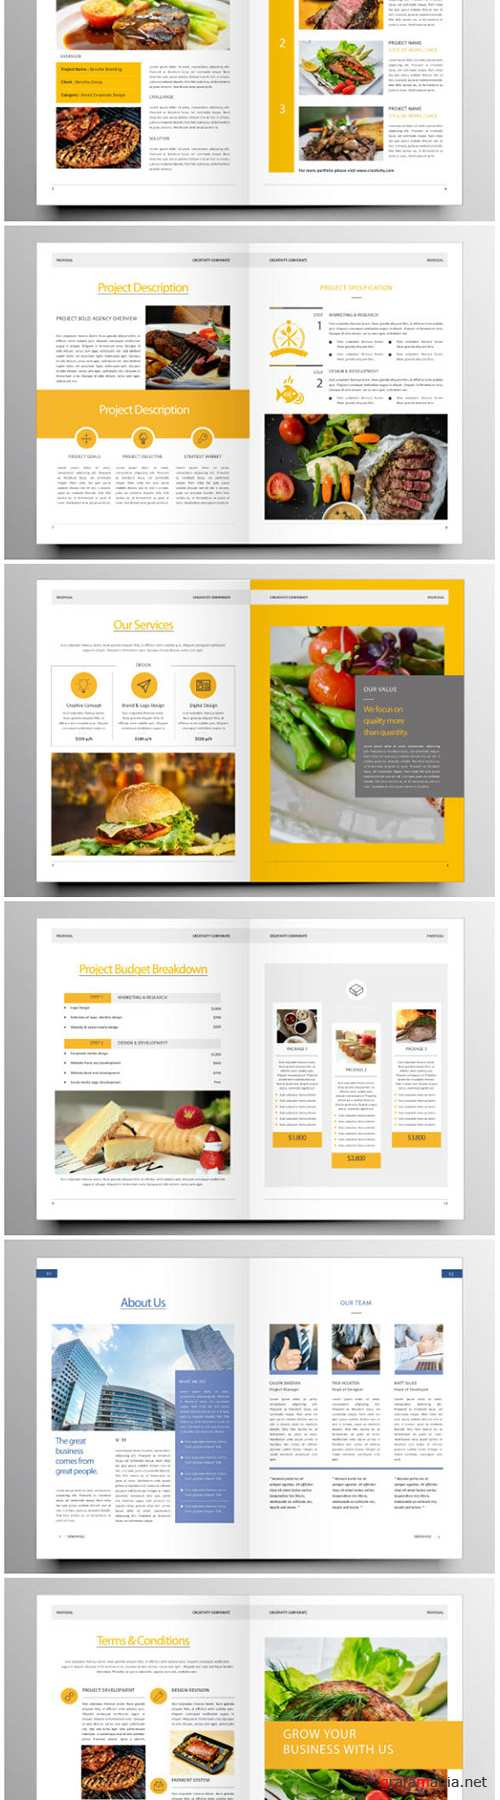 Brochure template vector layout design, corporate business annual report, magazine, flyer mockup # 195